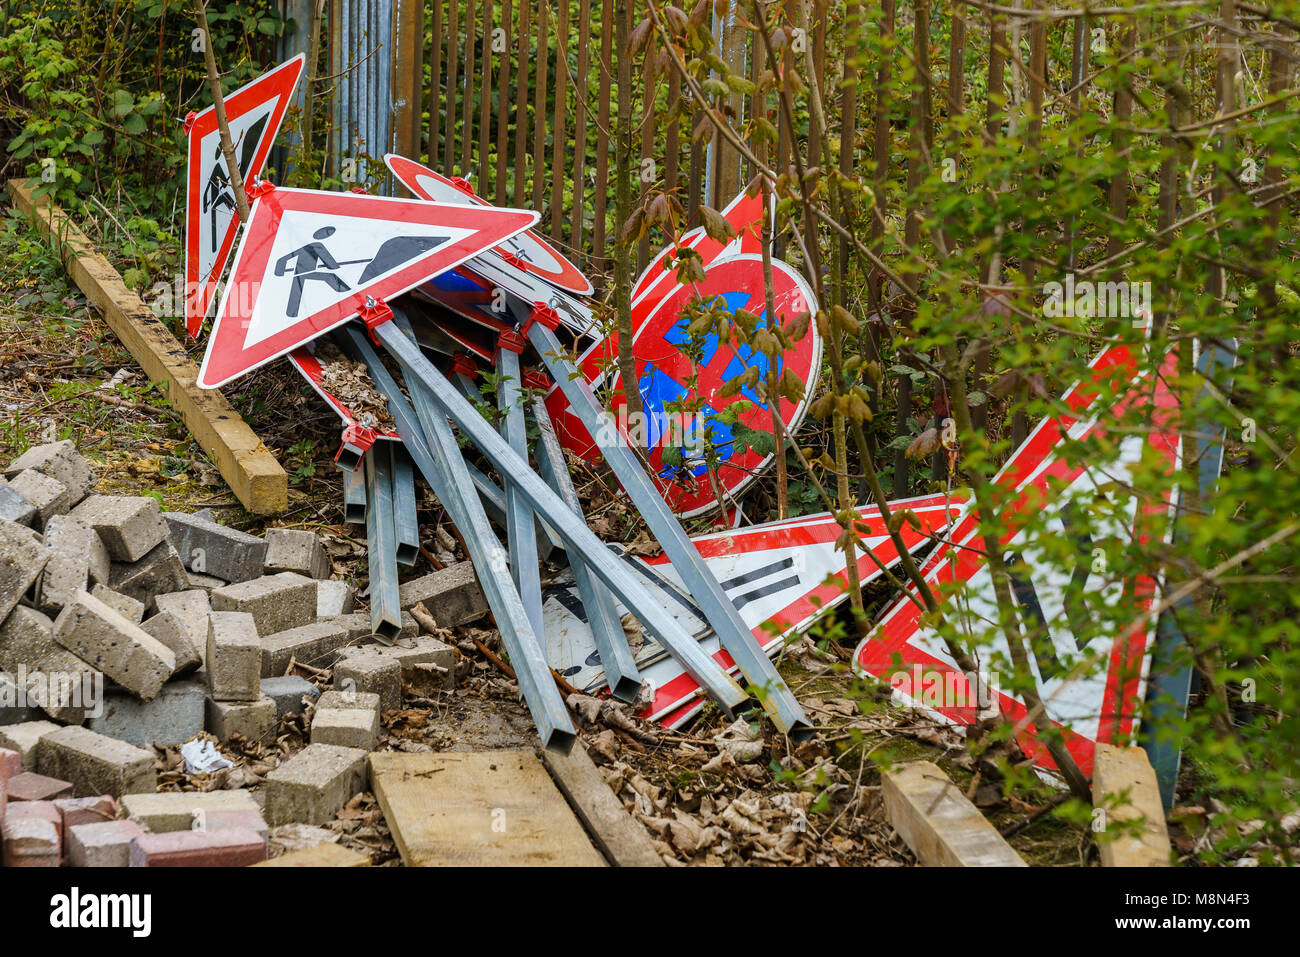 Gelsenkirchen, North Rhine-Westphalia, Germany - April 06, 2017: Unused signs for construction site safety - Stock Image